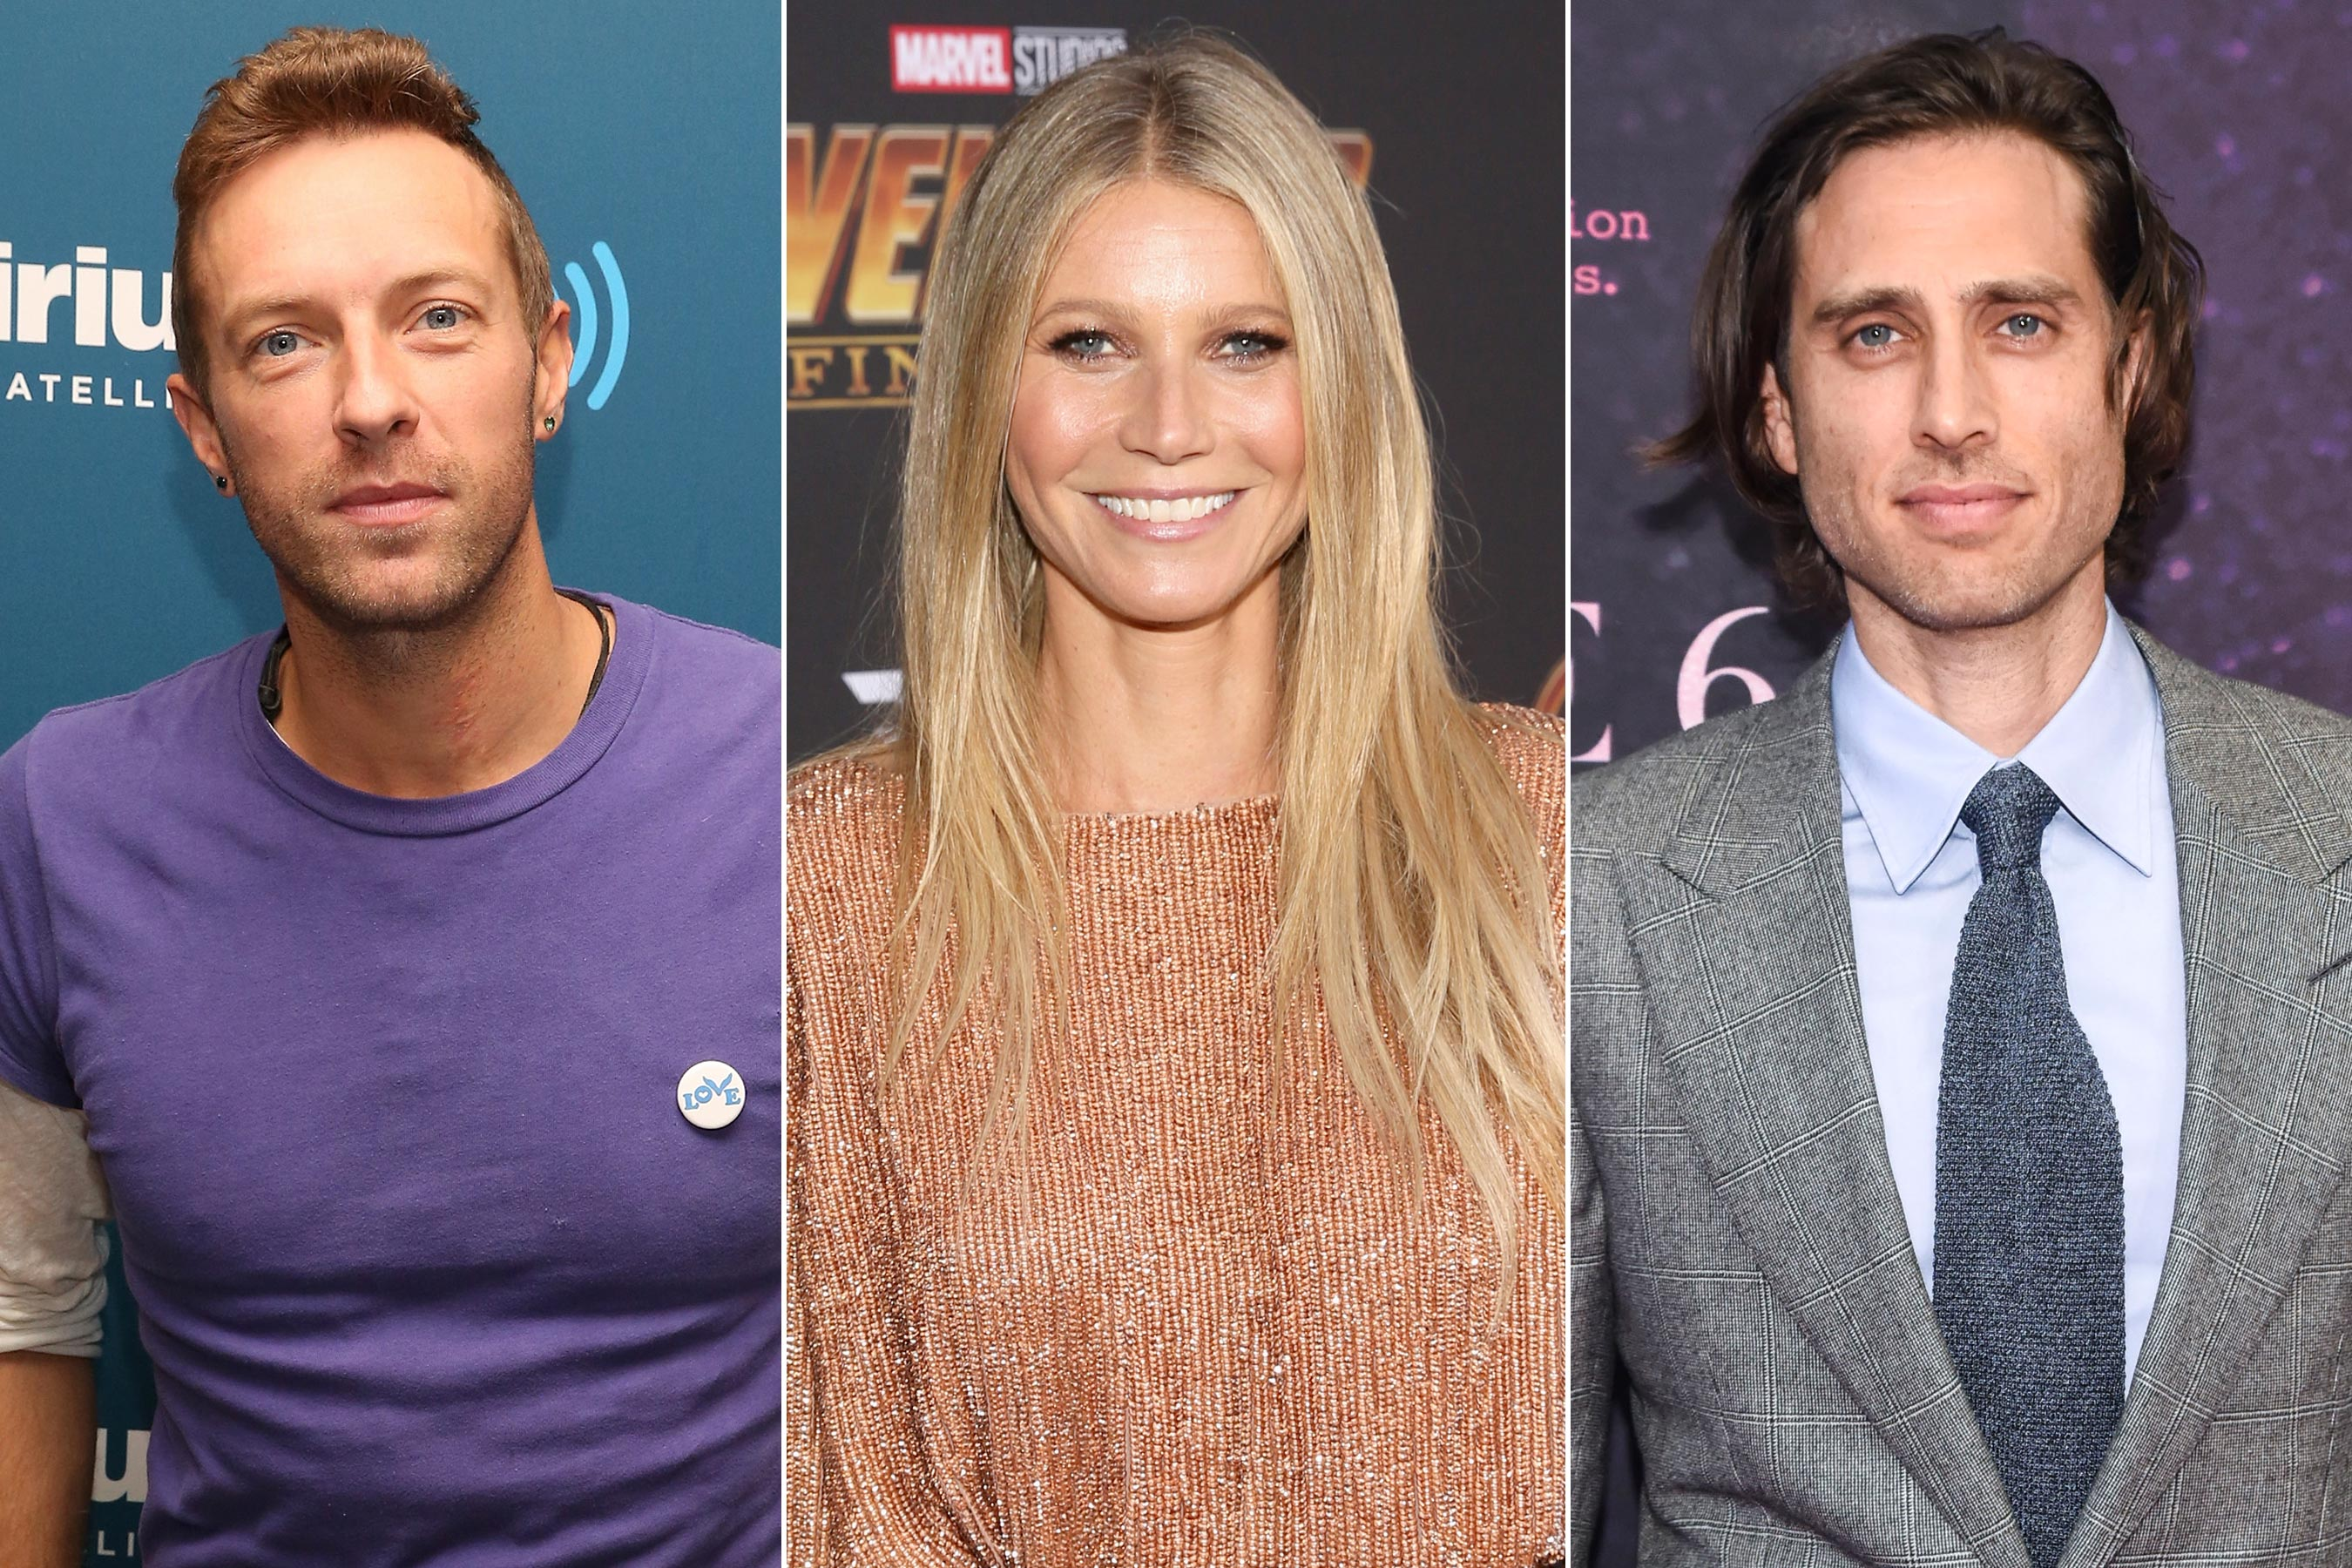 Gwyneth Paltrow Shares Sweet Father's Day Tributes for Ex Chris Martin and Fiancé Brad Falchuk